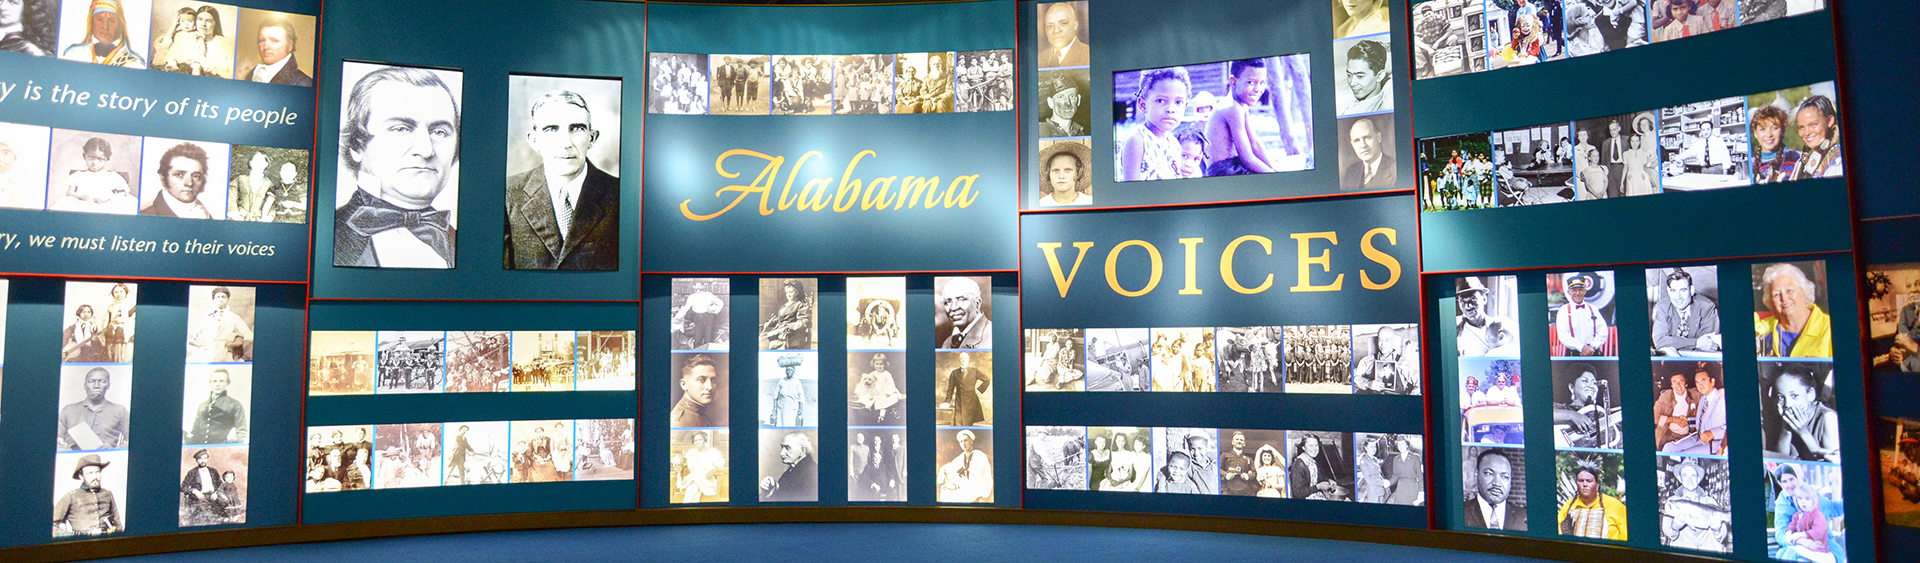 Alabama Voices, Picture from Roger Paige, Montgomery Alabama, Diversity & Inclusion, Montgomery Area Chamber of Commerce, Montgomery Chamber, MGMChamber